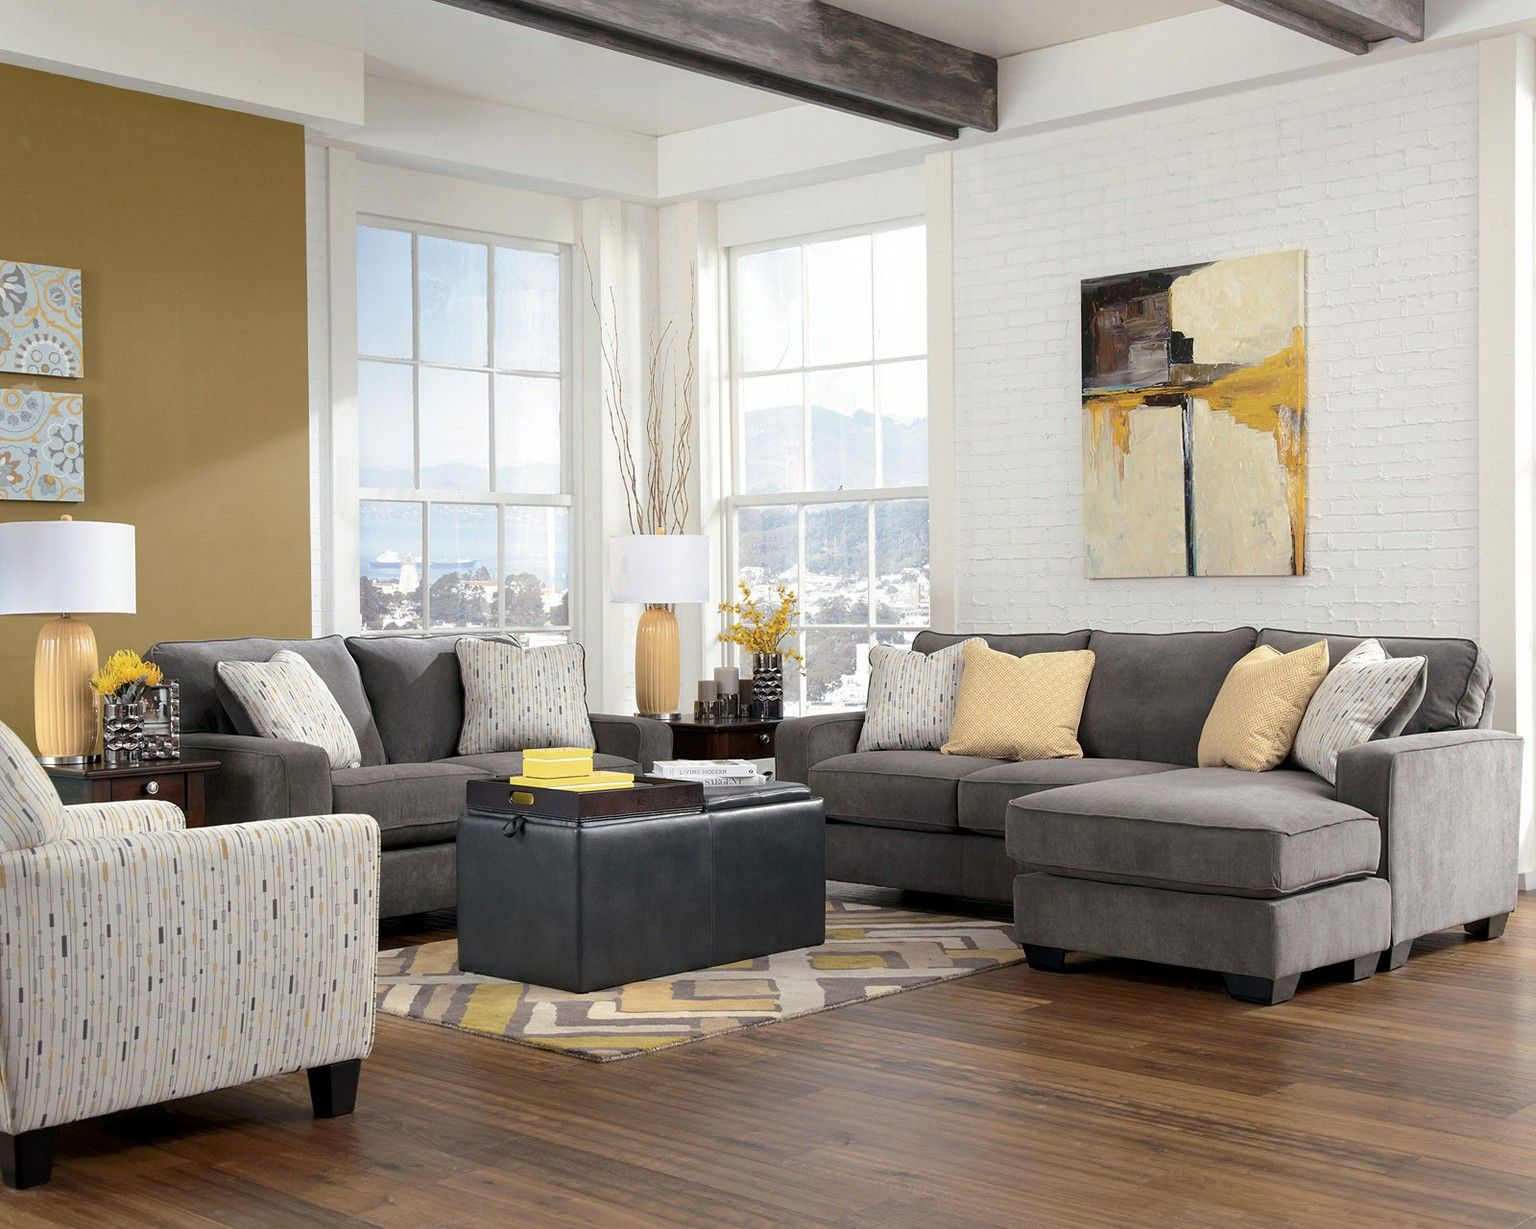 Living Room Ideas Grey Couch ways to decorate grey living rooms | dark gray couches, grey